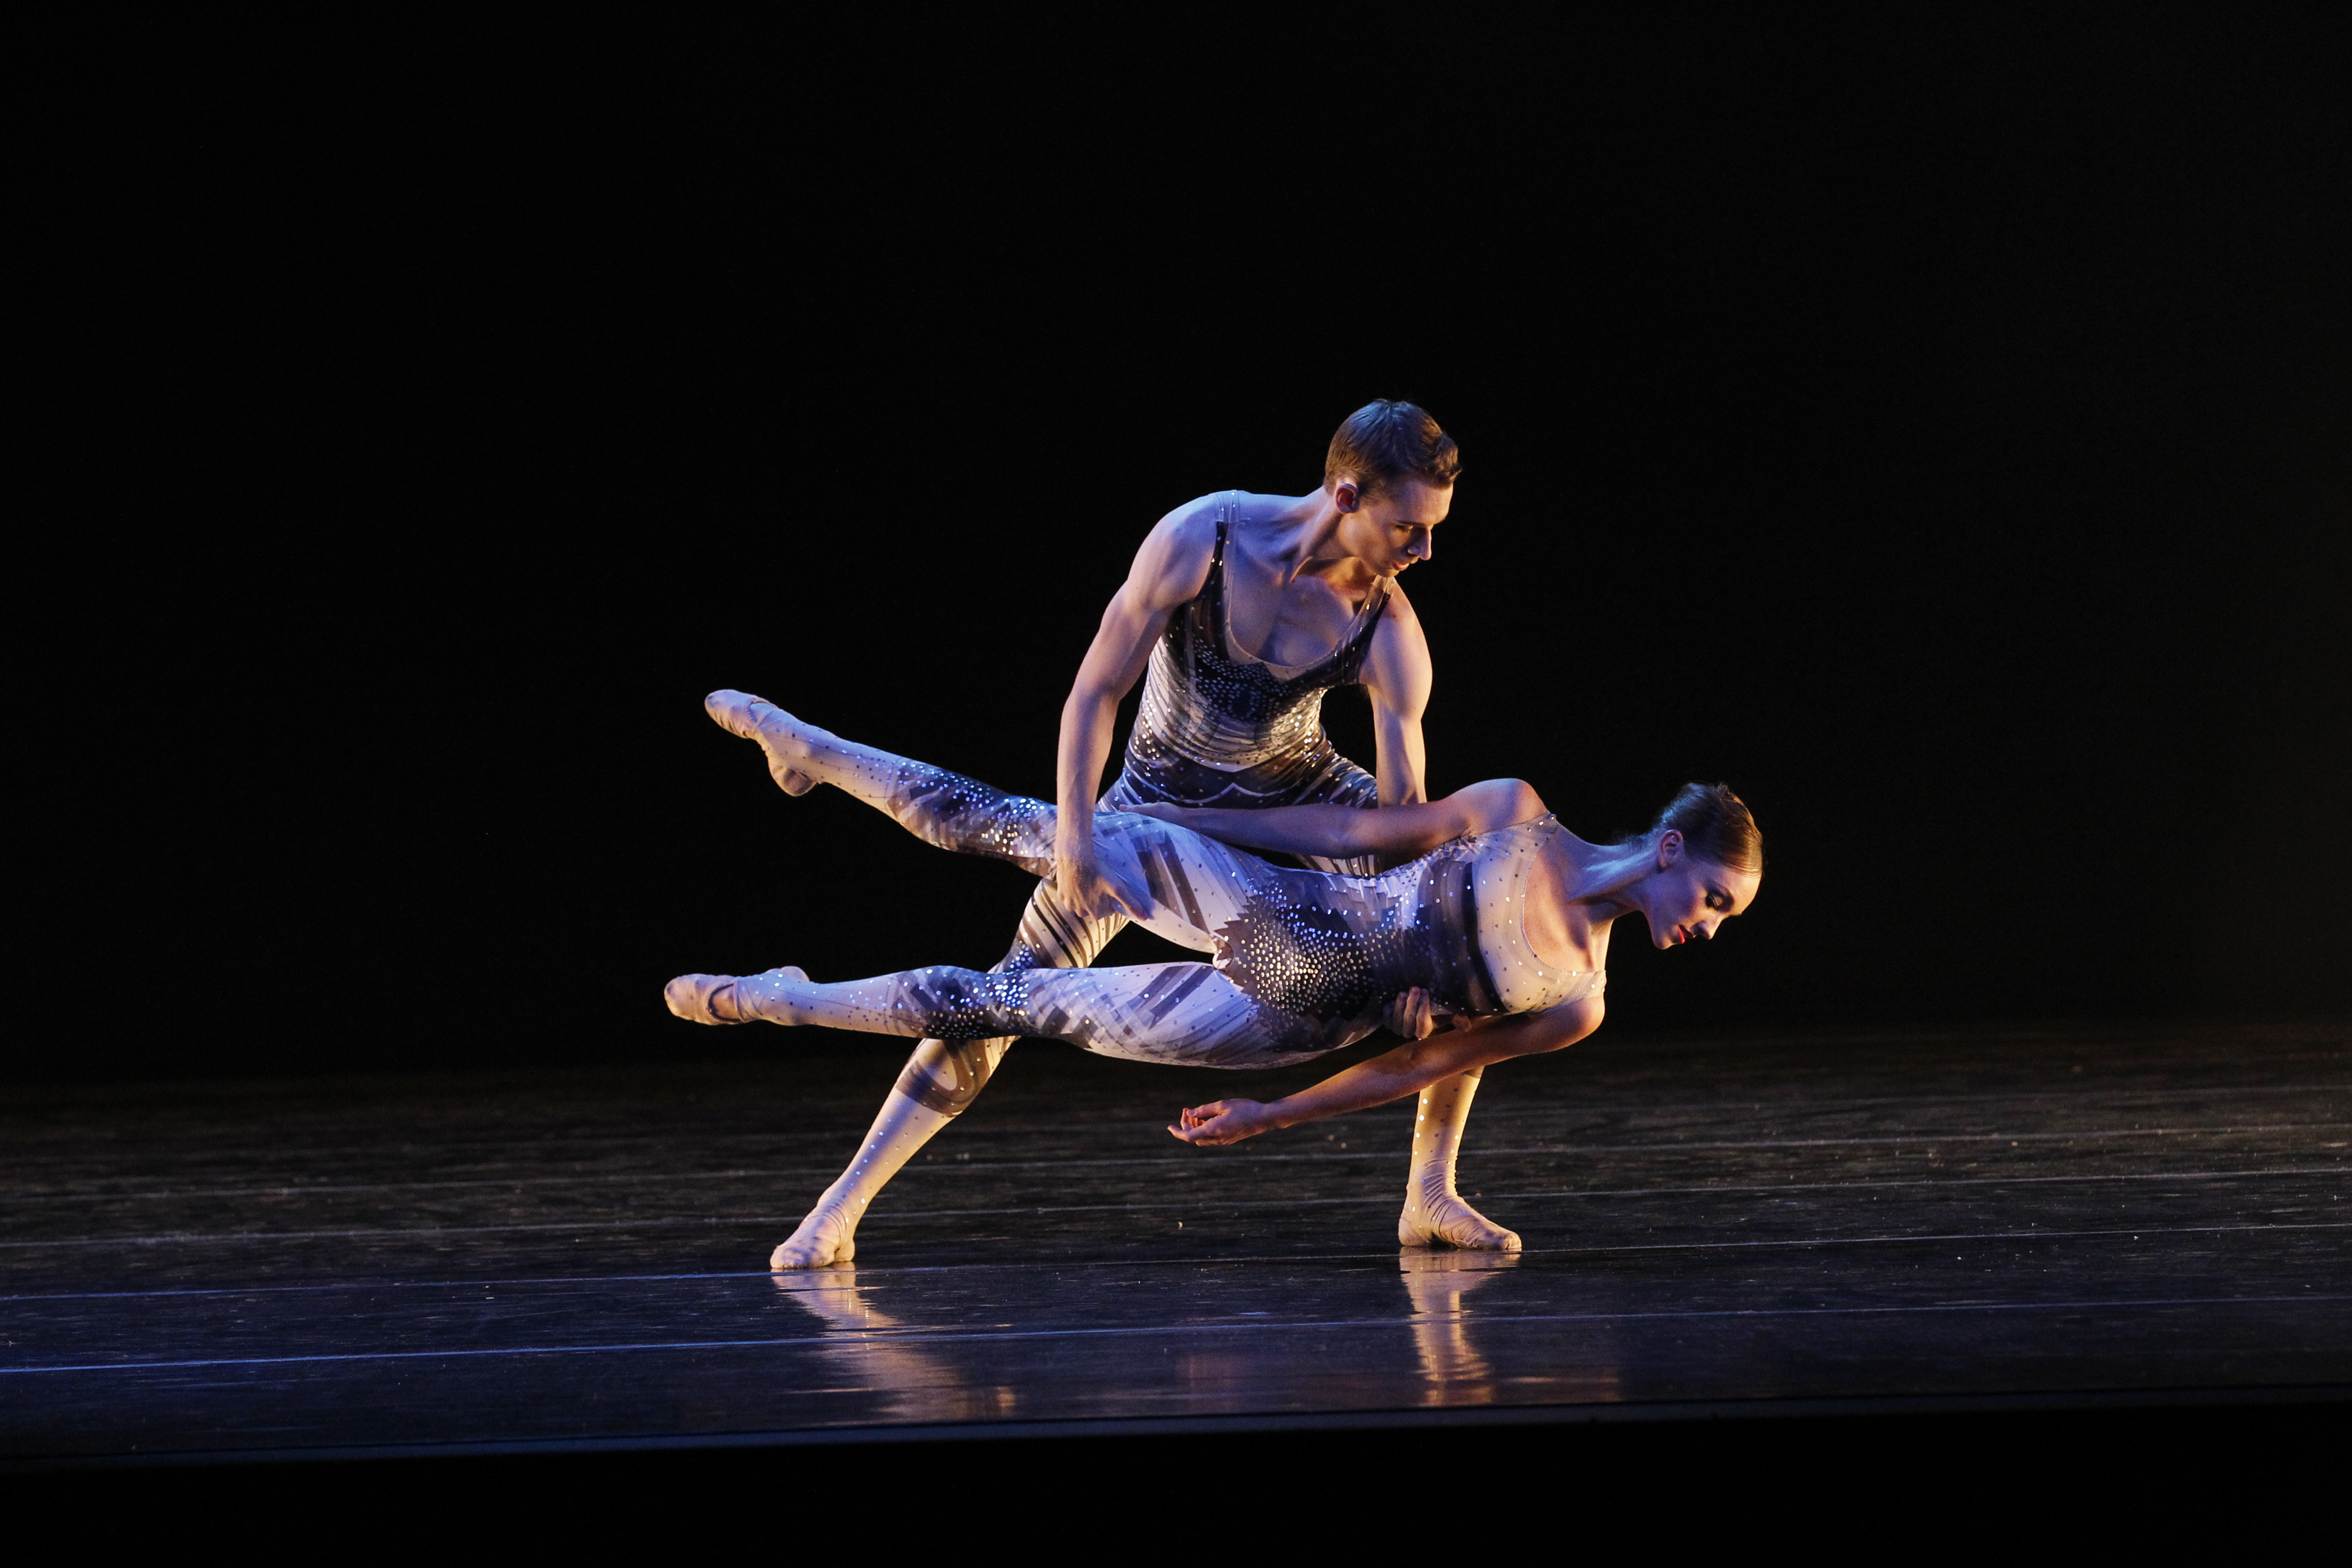 The Narrative of Nothing (Infinity triple bill): photographer Jeff Busby, dancers Charles Thompson and Brooke Lockett